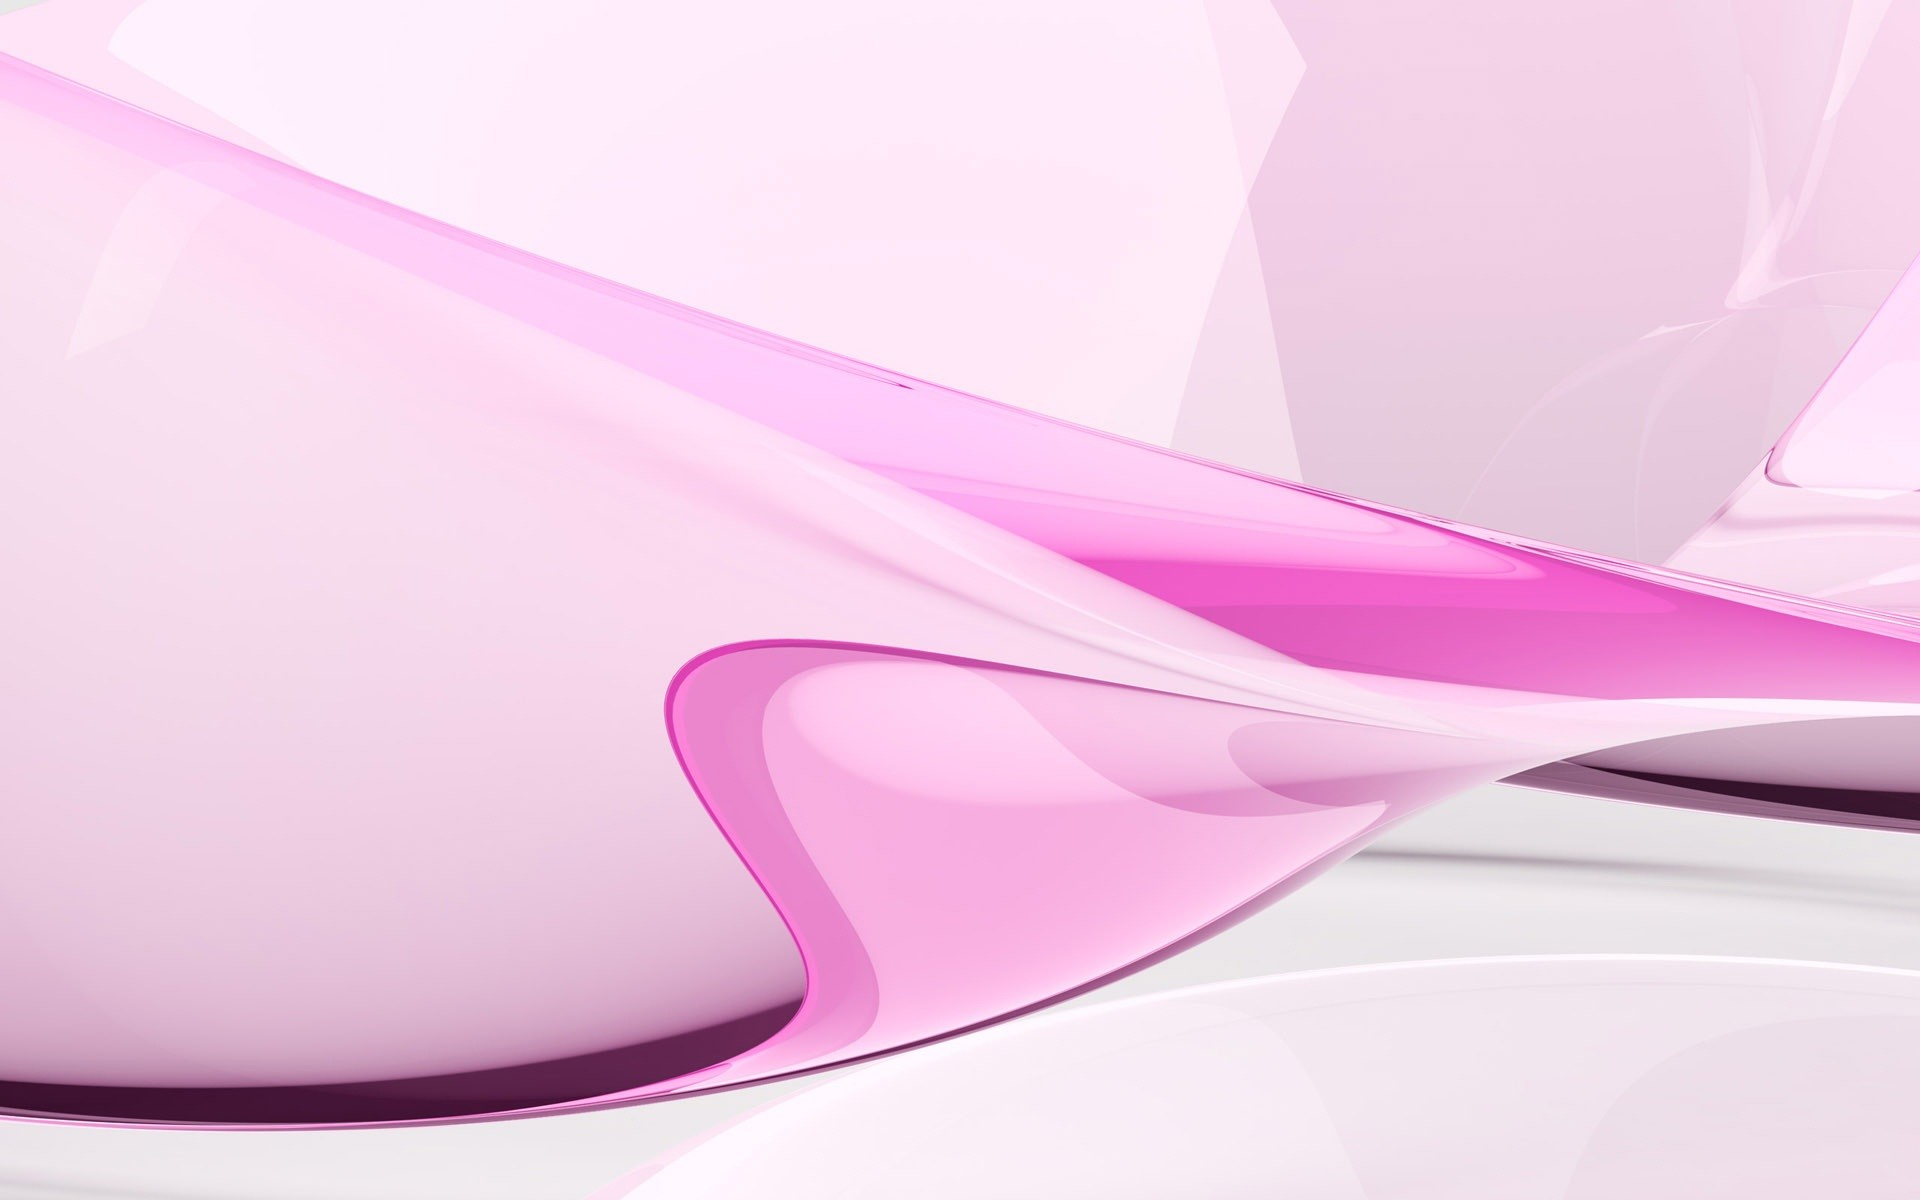 Pink Abstract Designs Wallpapers Hd Wallpapers